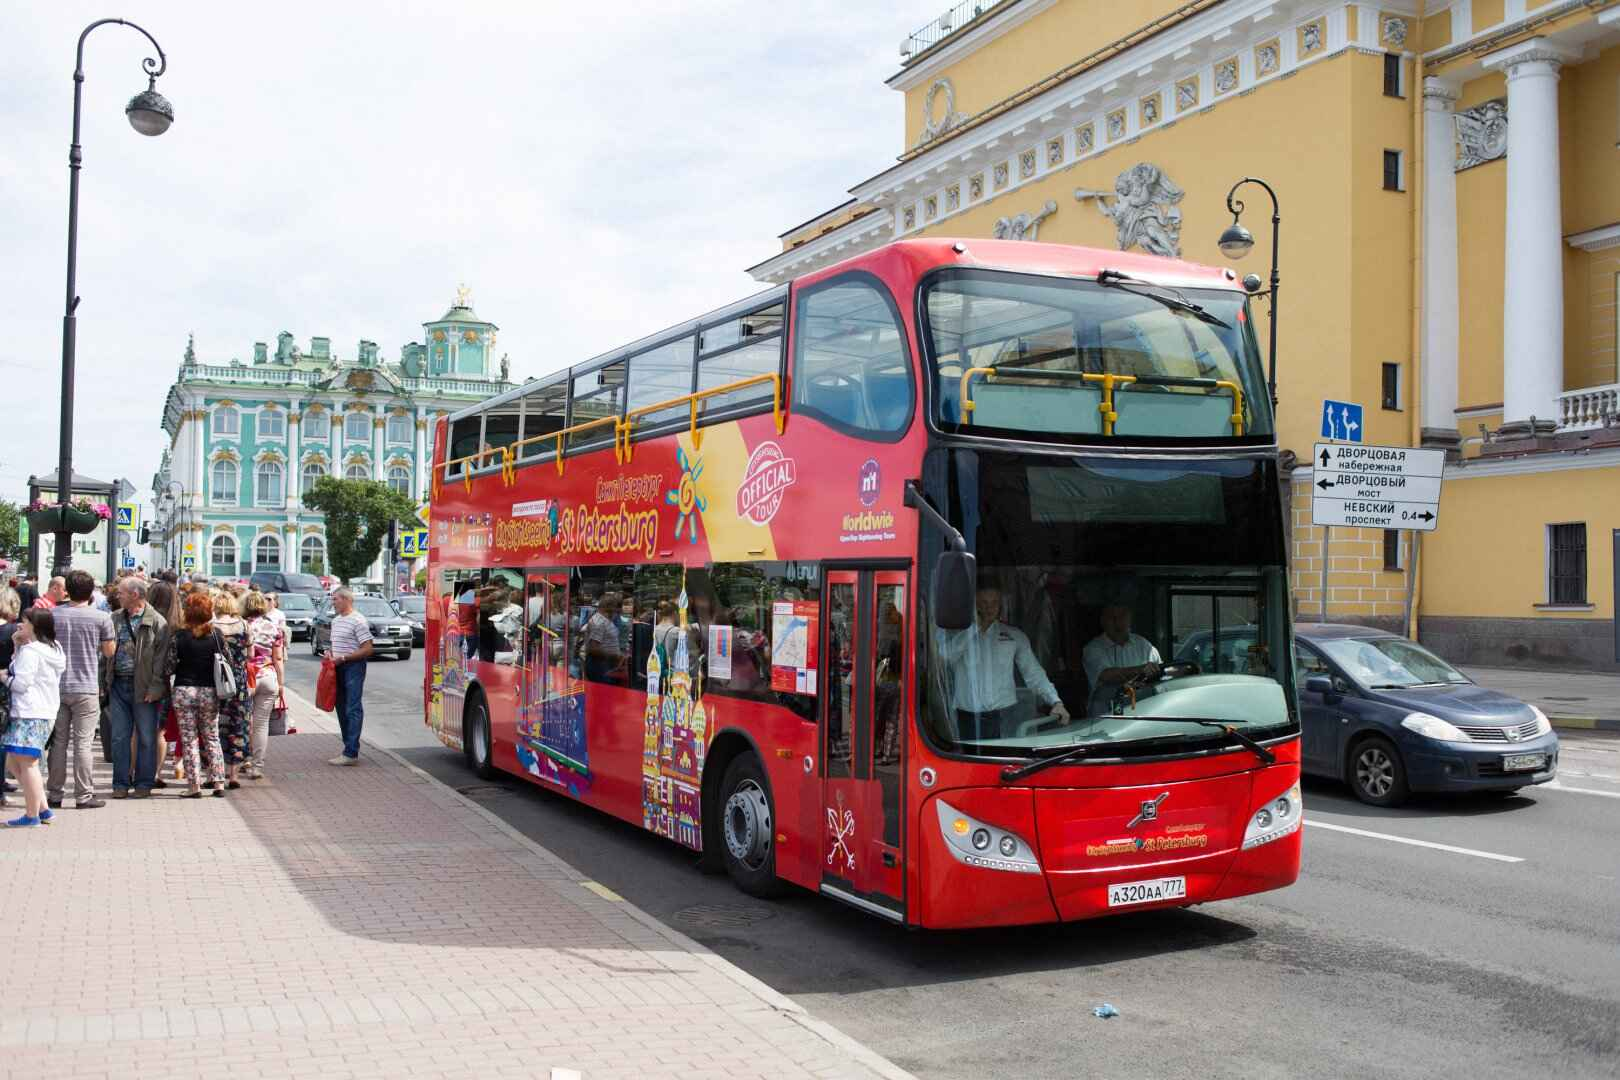 : Sightseeing tour across St. Petersburg by bus | Buses City Sightseeing | Map St. Petersburg City Pass, Фото 7